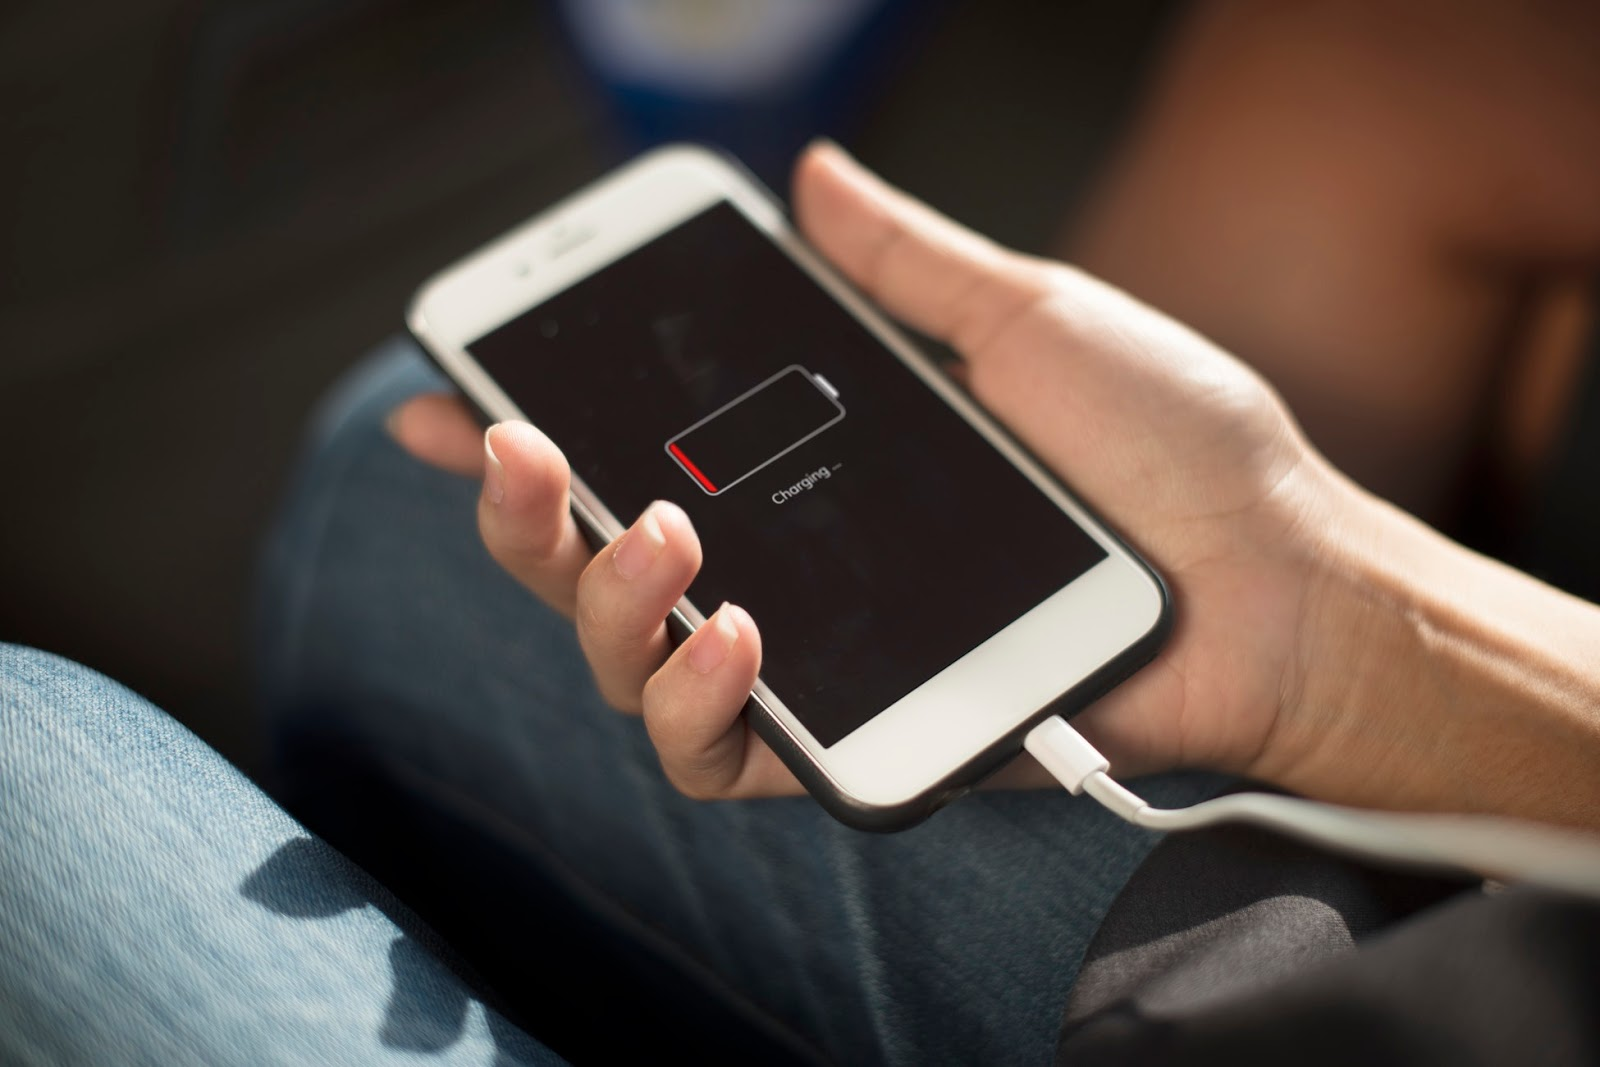 Is Your Phone Using Too Much Data And Drain Battery Quickly